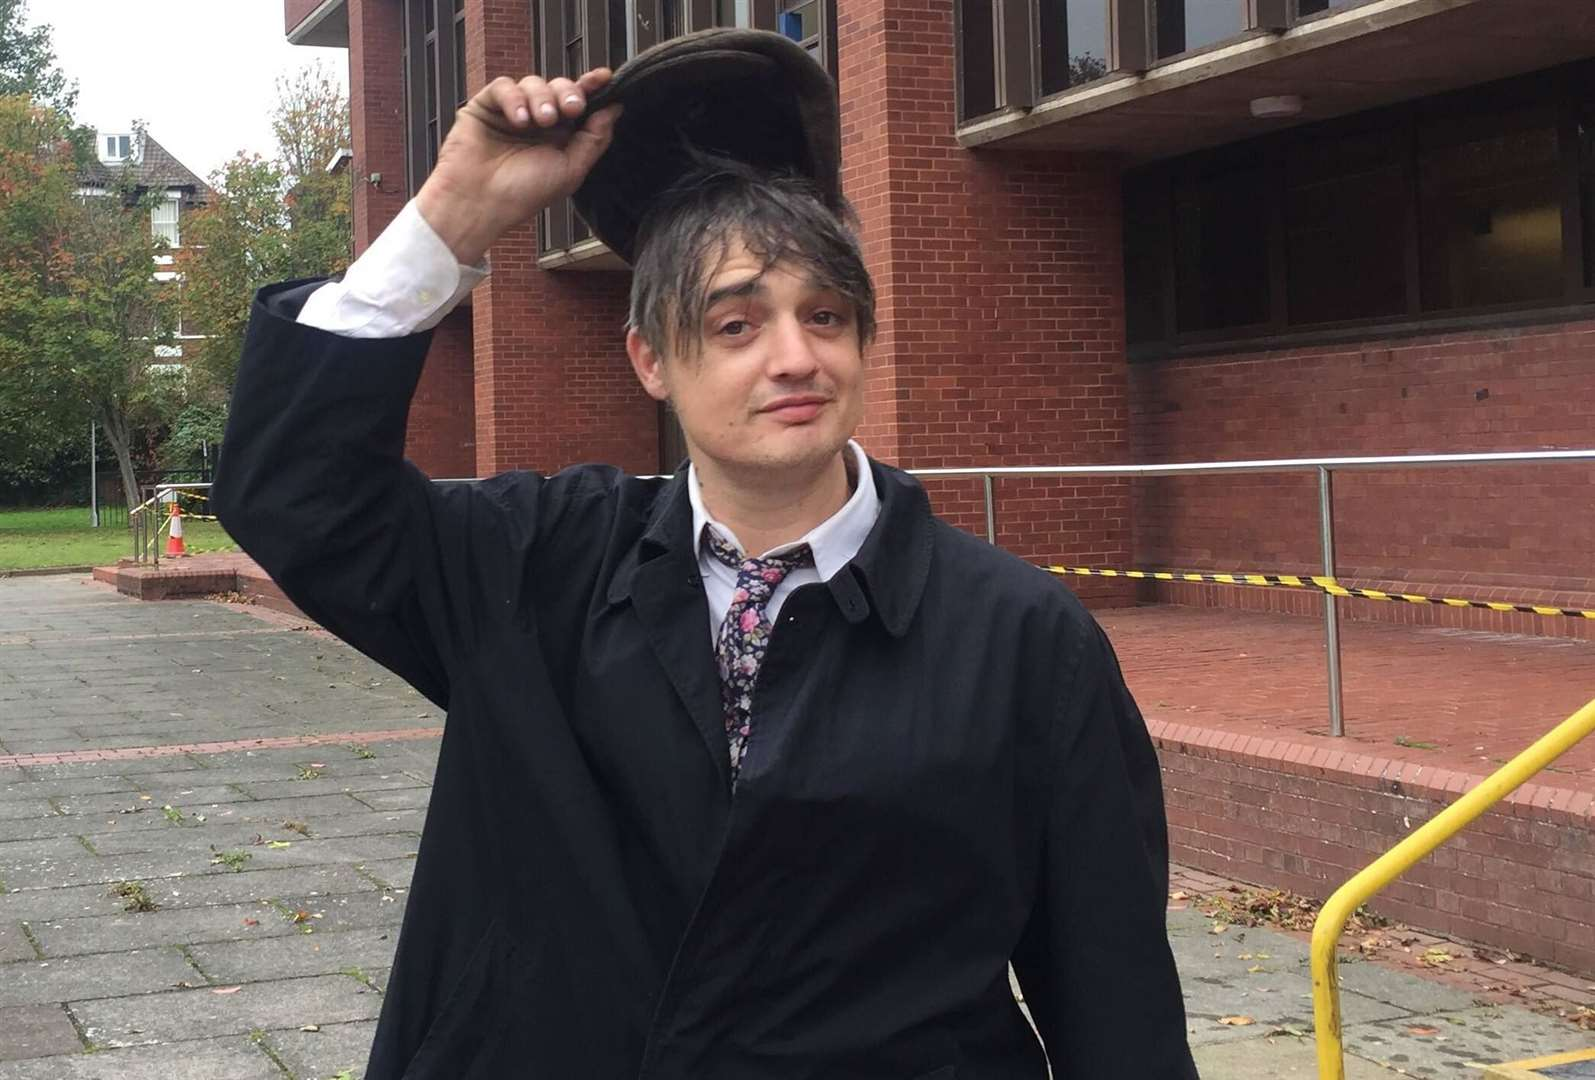 Pete Doherty fears his band members could be kicked out after Brexit